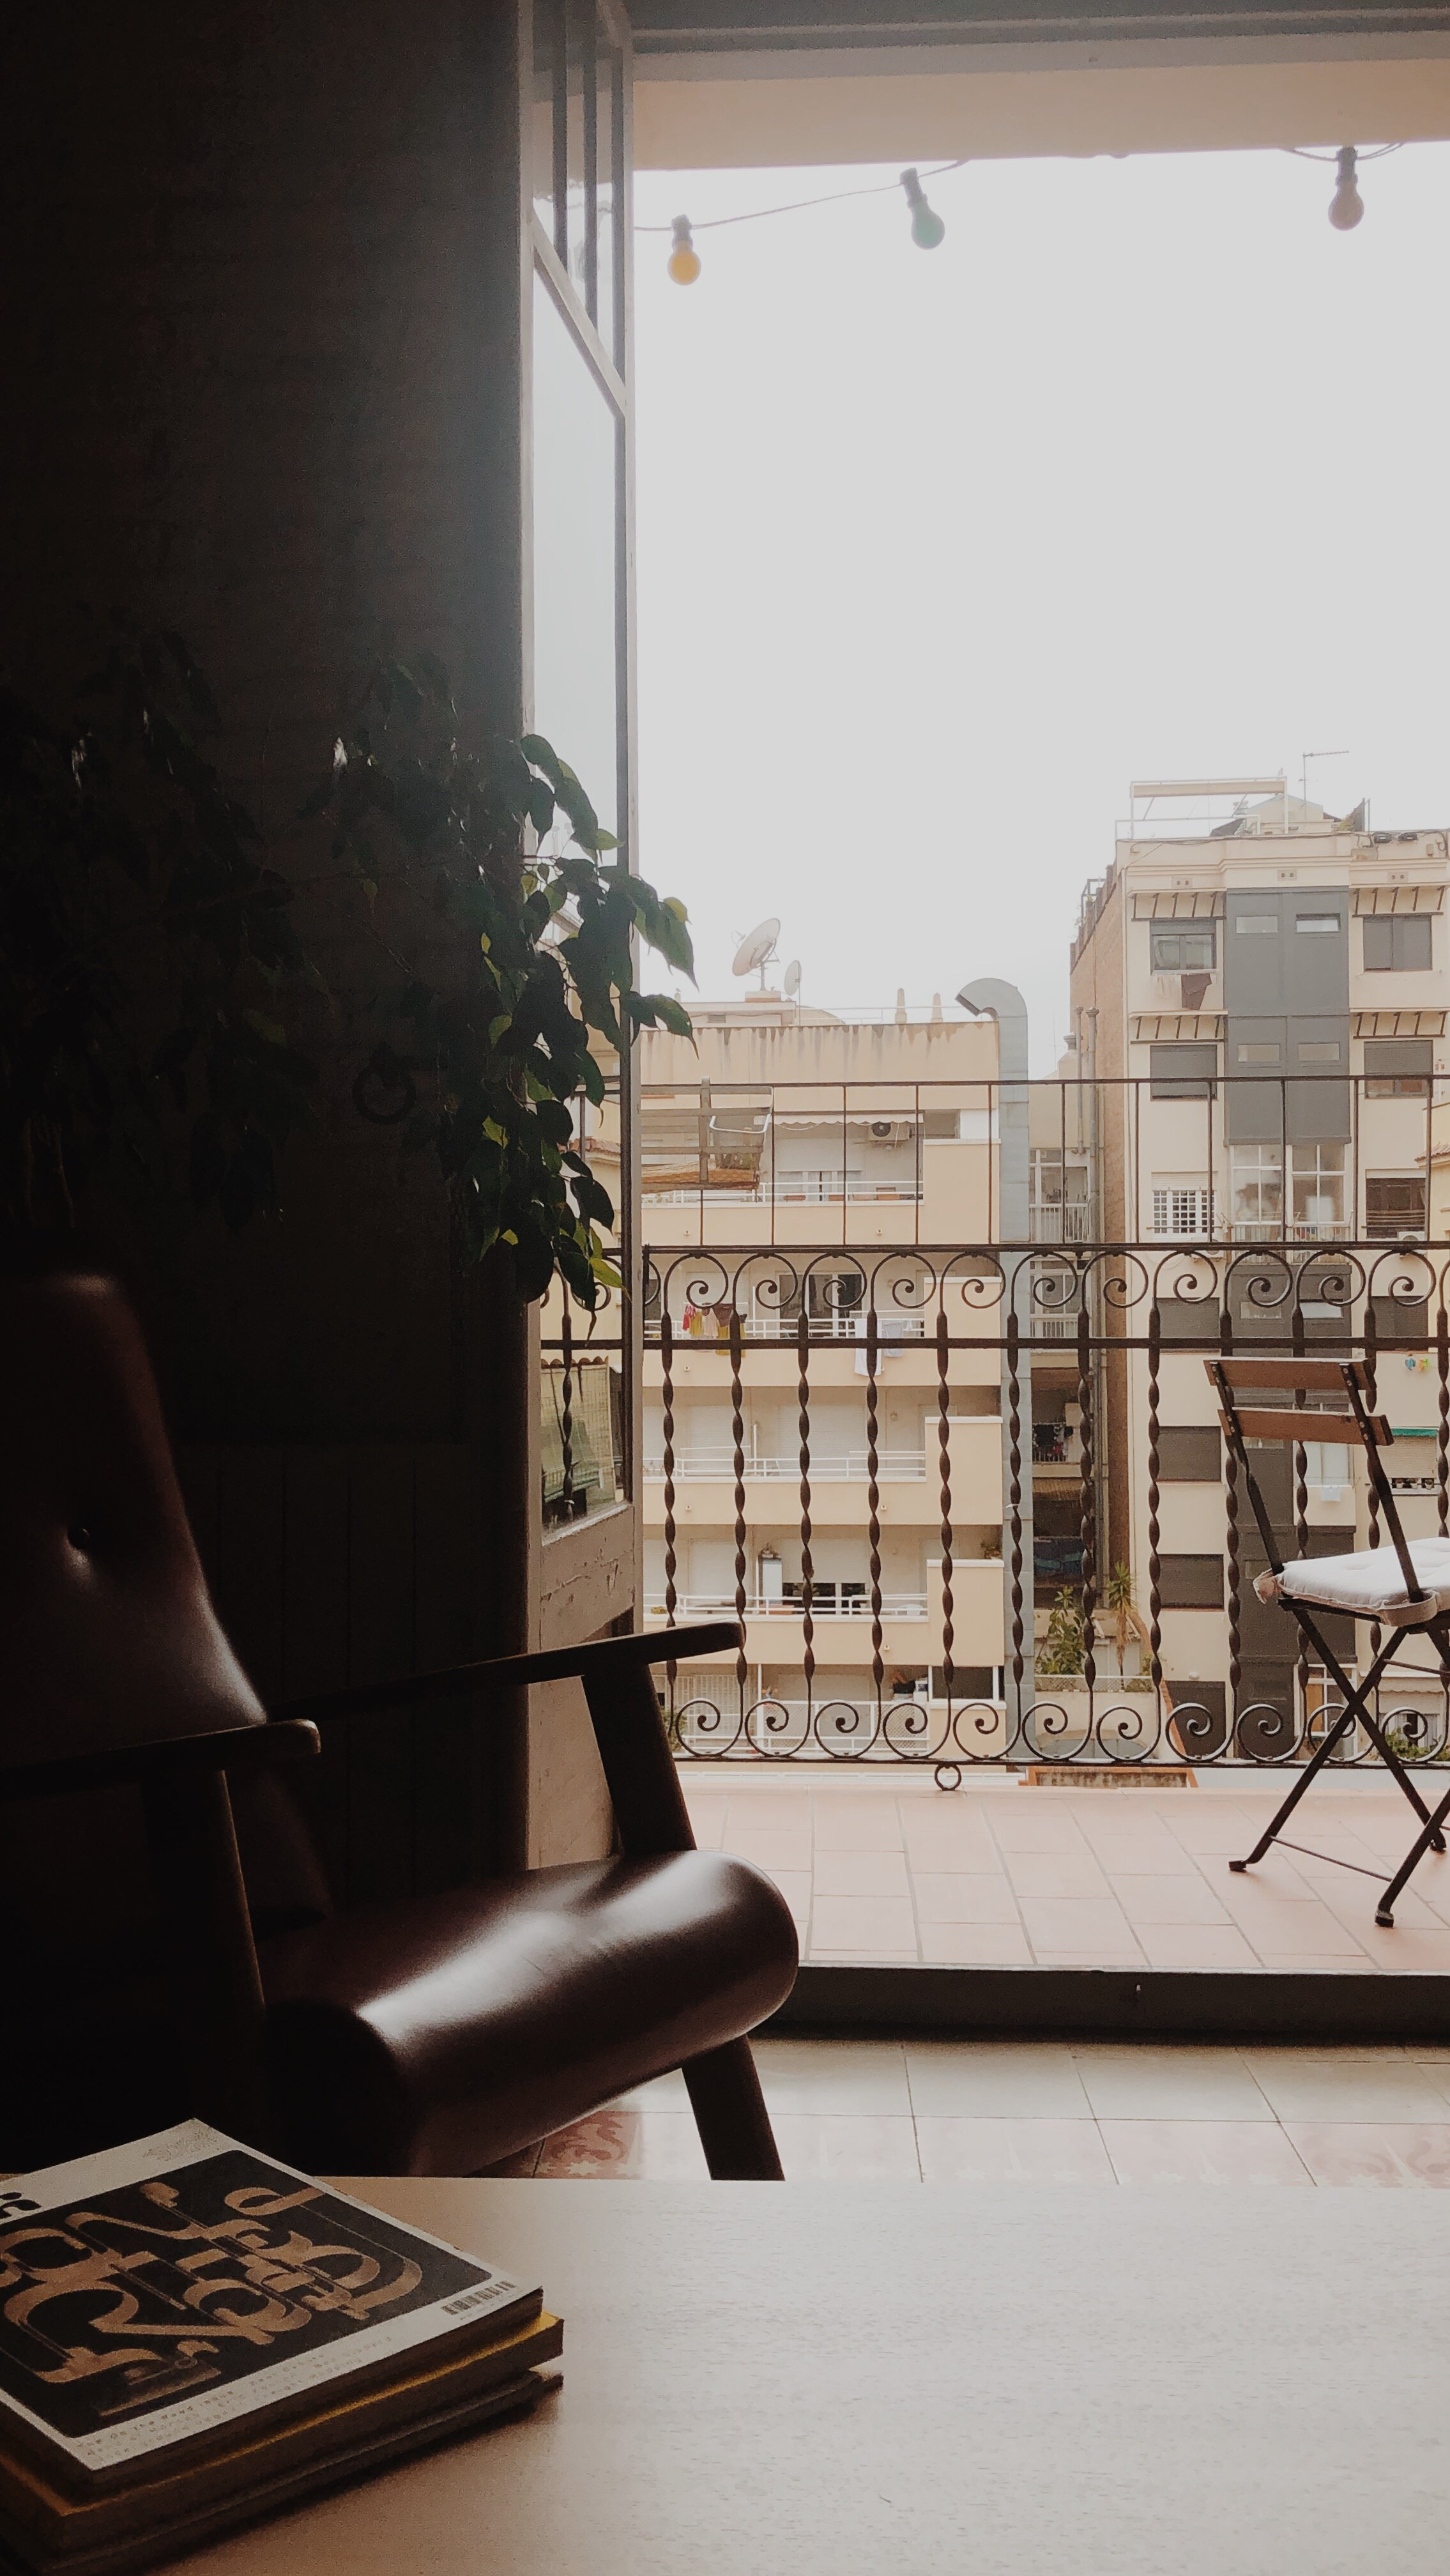 Barcelona Airbnb, looking out onto the balcony